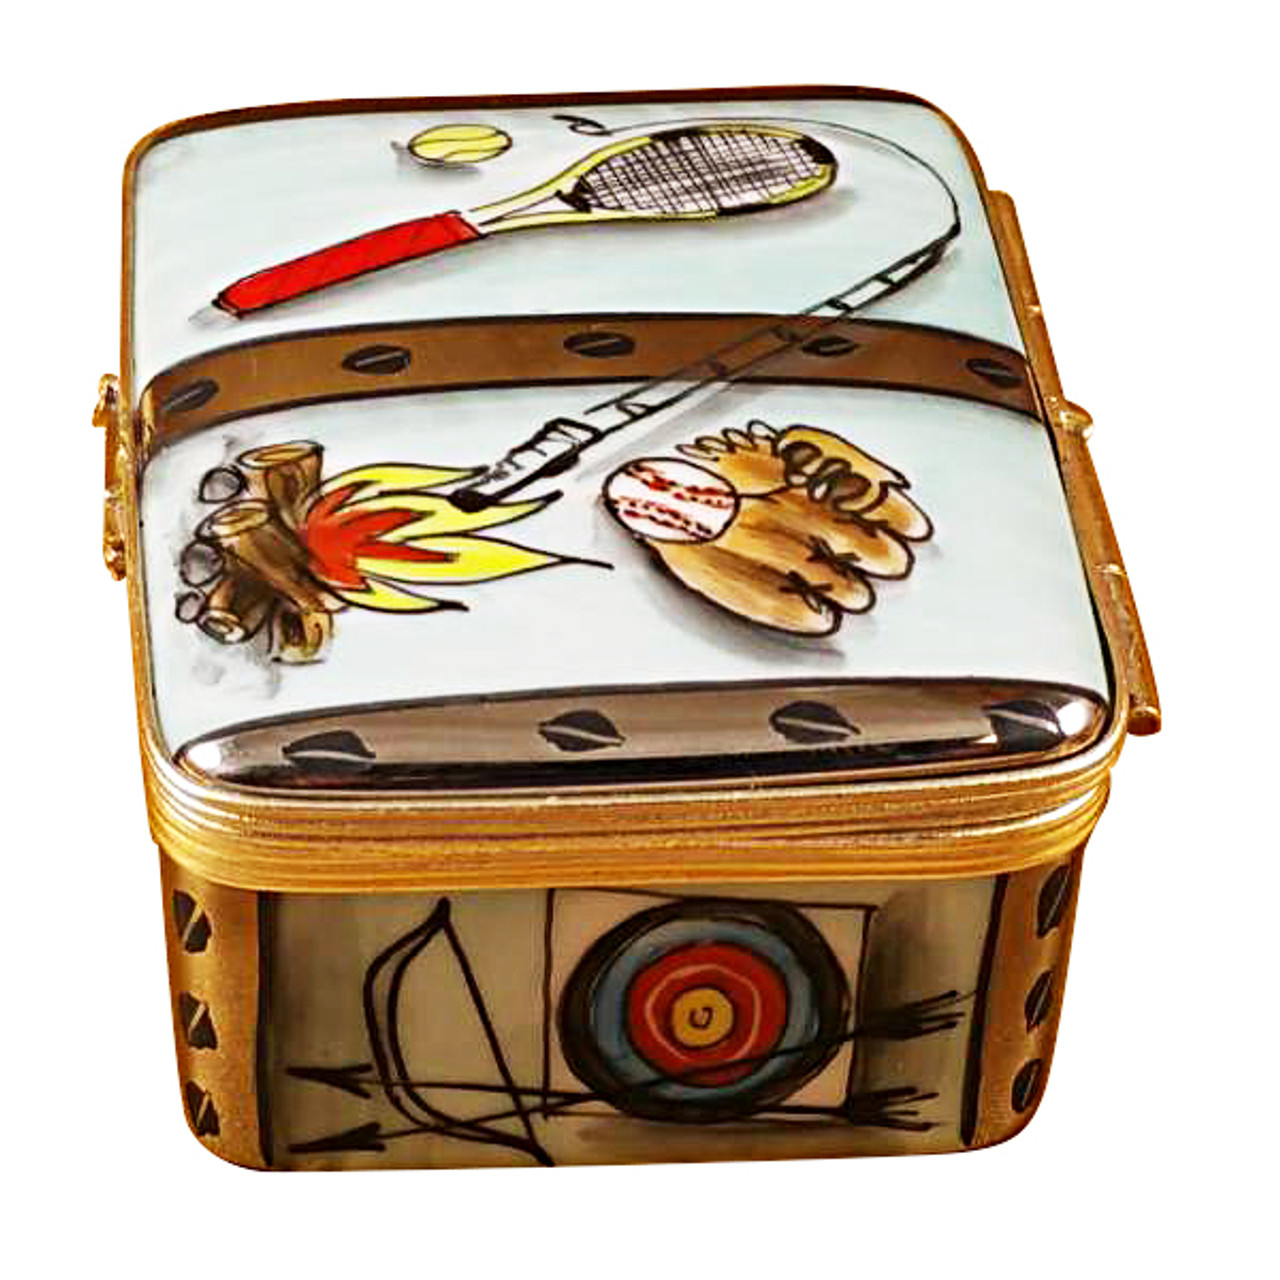 Camp Trunk Rochard Limoges Box